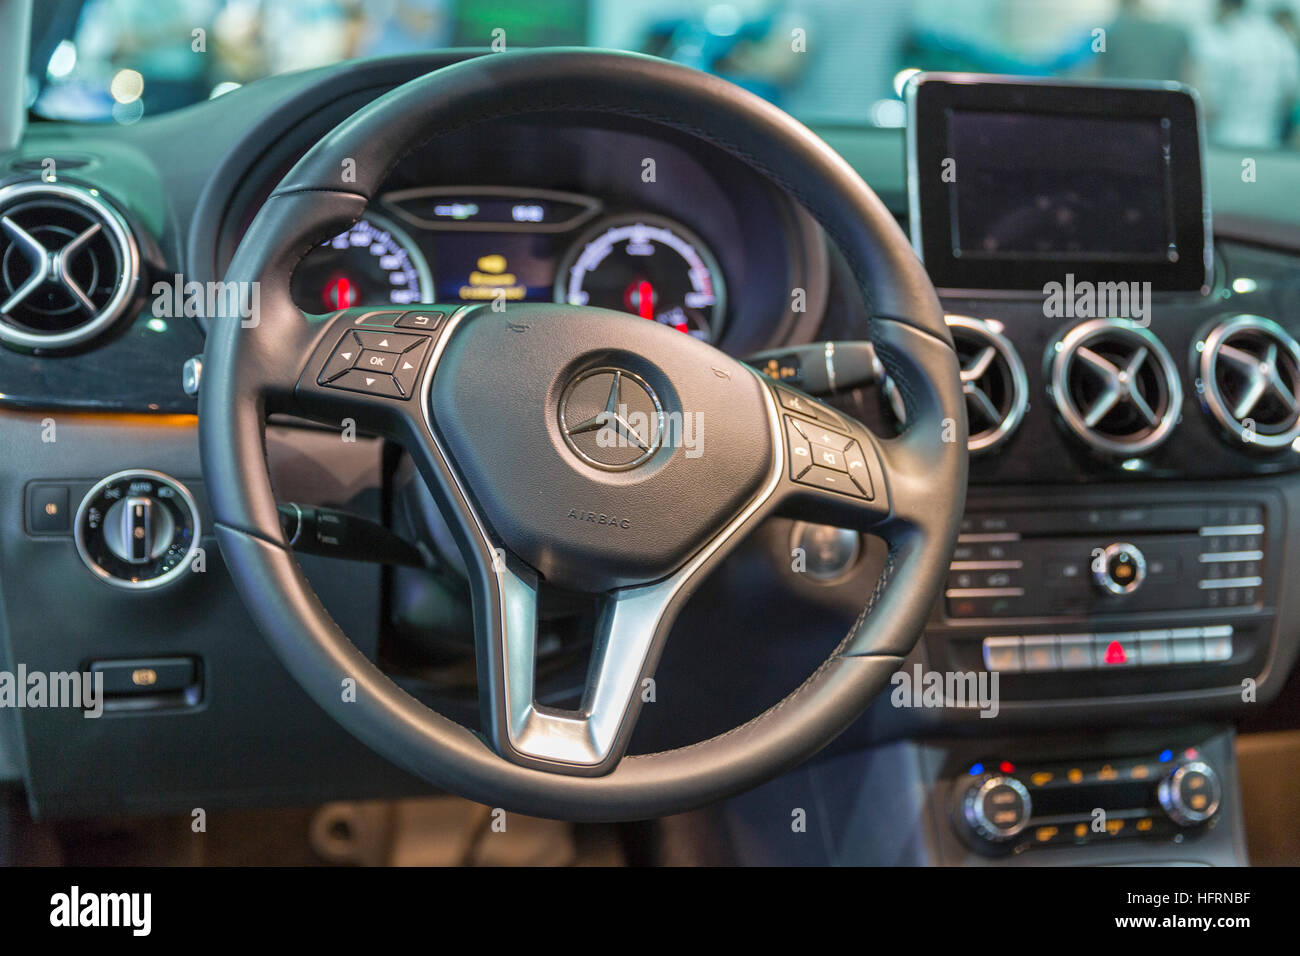 Mercedes-Benz B-class electric drive car interior closeup at First International Trade Show of Electric Vehicles Stock Photo